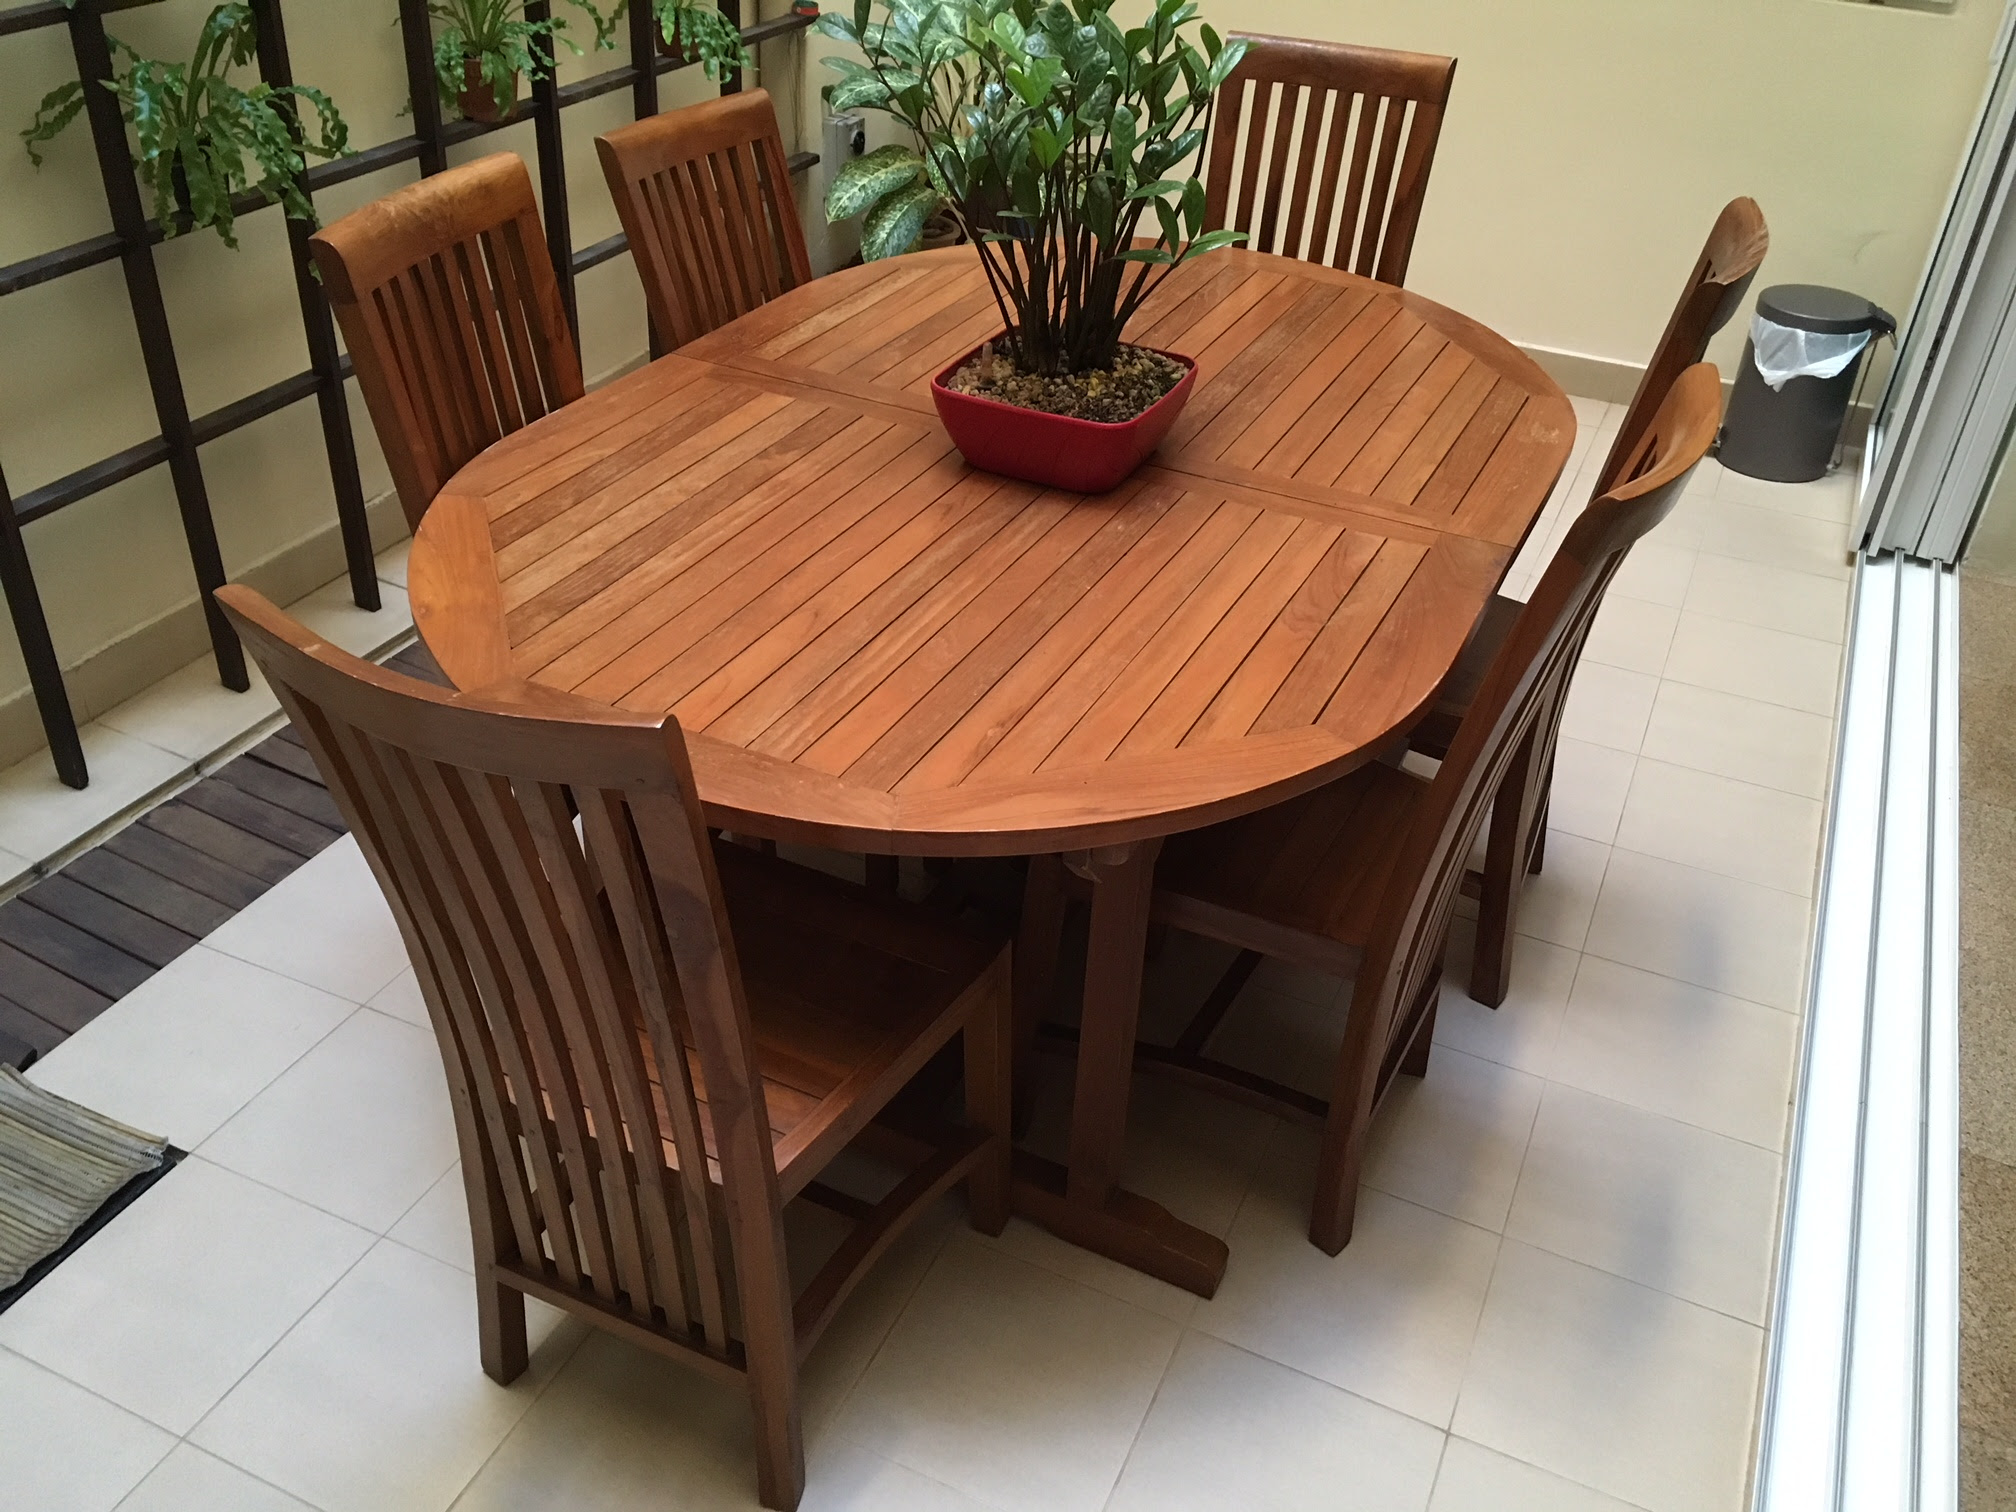 WTS: Used Wooden Teak Extendable Dining Table & 6 Chairs ...